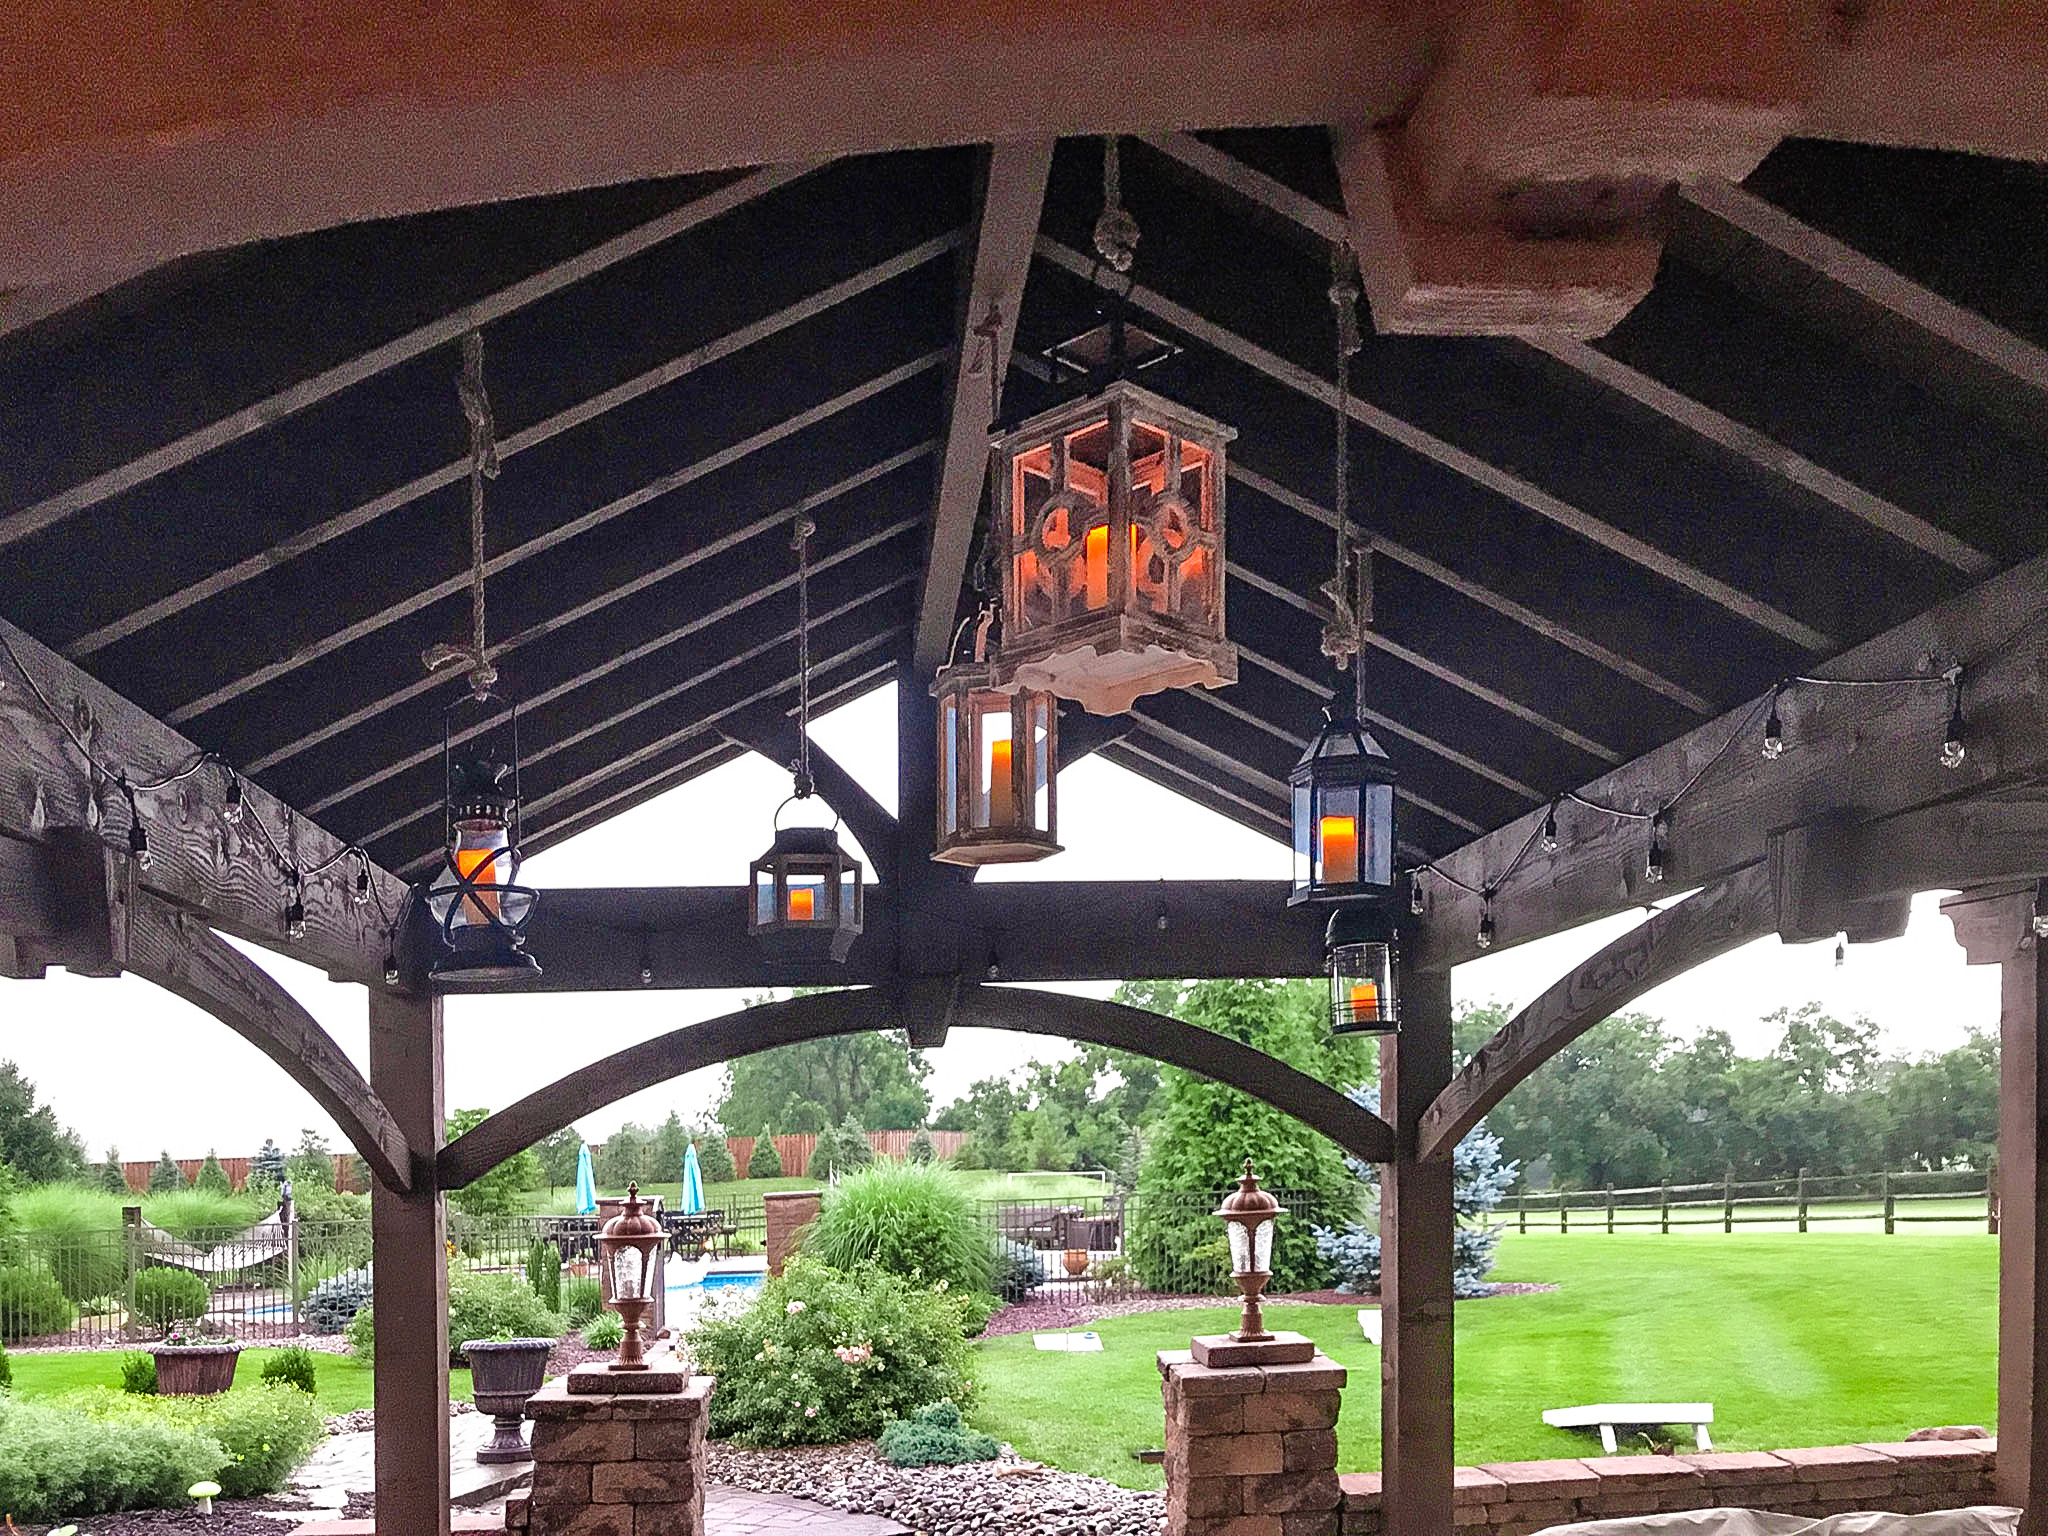 Lanterns from pavilion roof hang